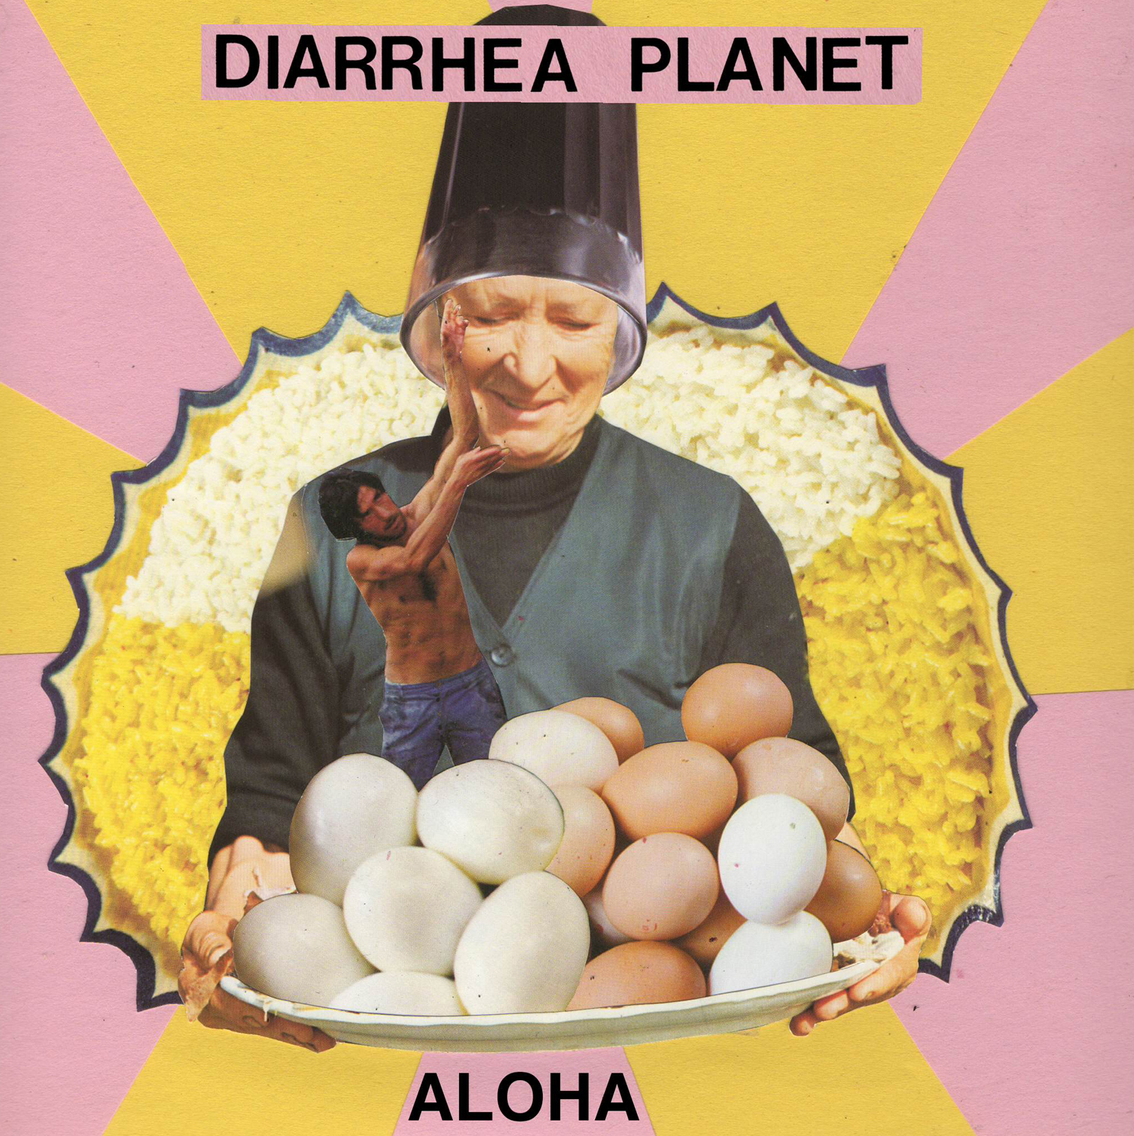 ULTIMATE DIARRHEA PLANET BUNDLE! Limited Time Only $29